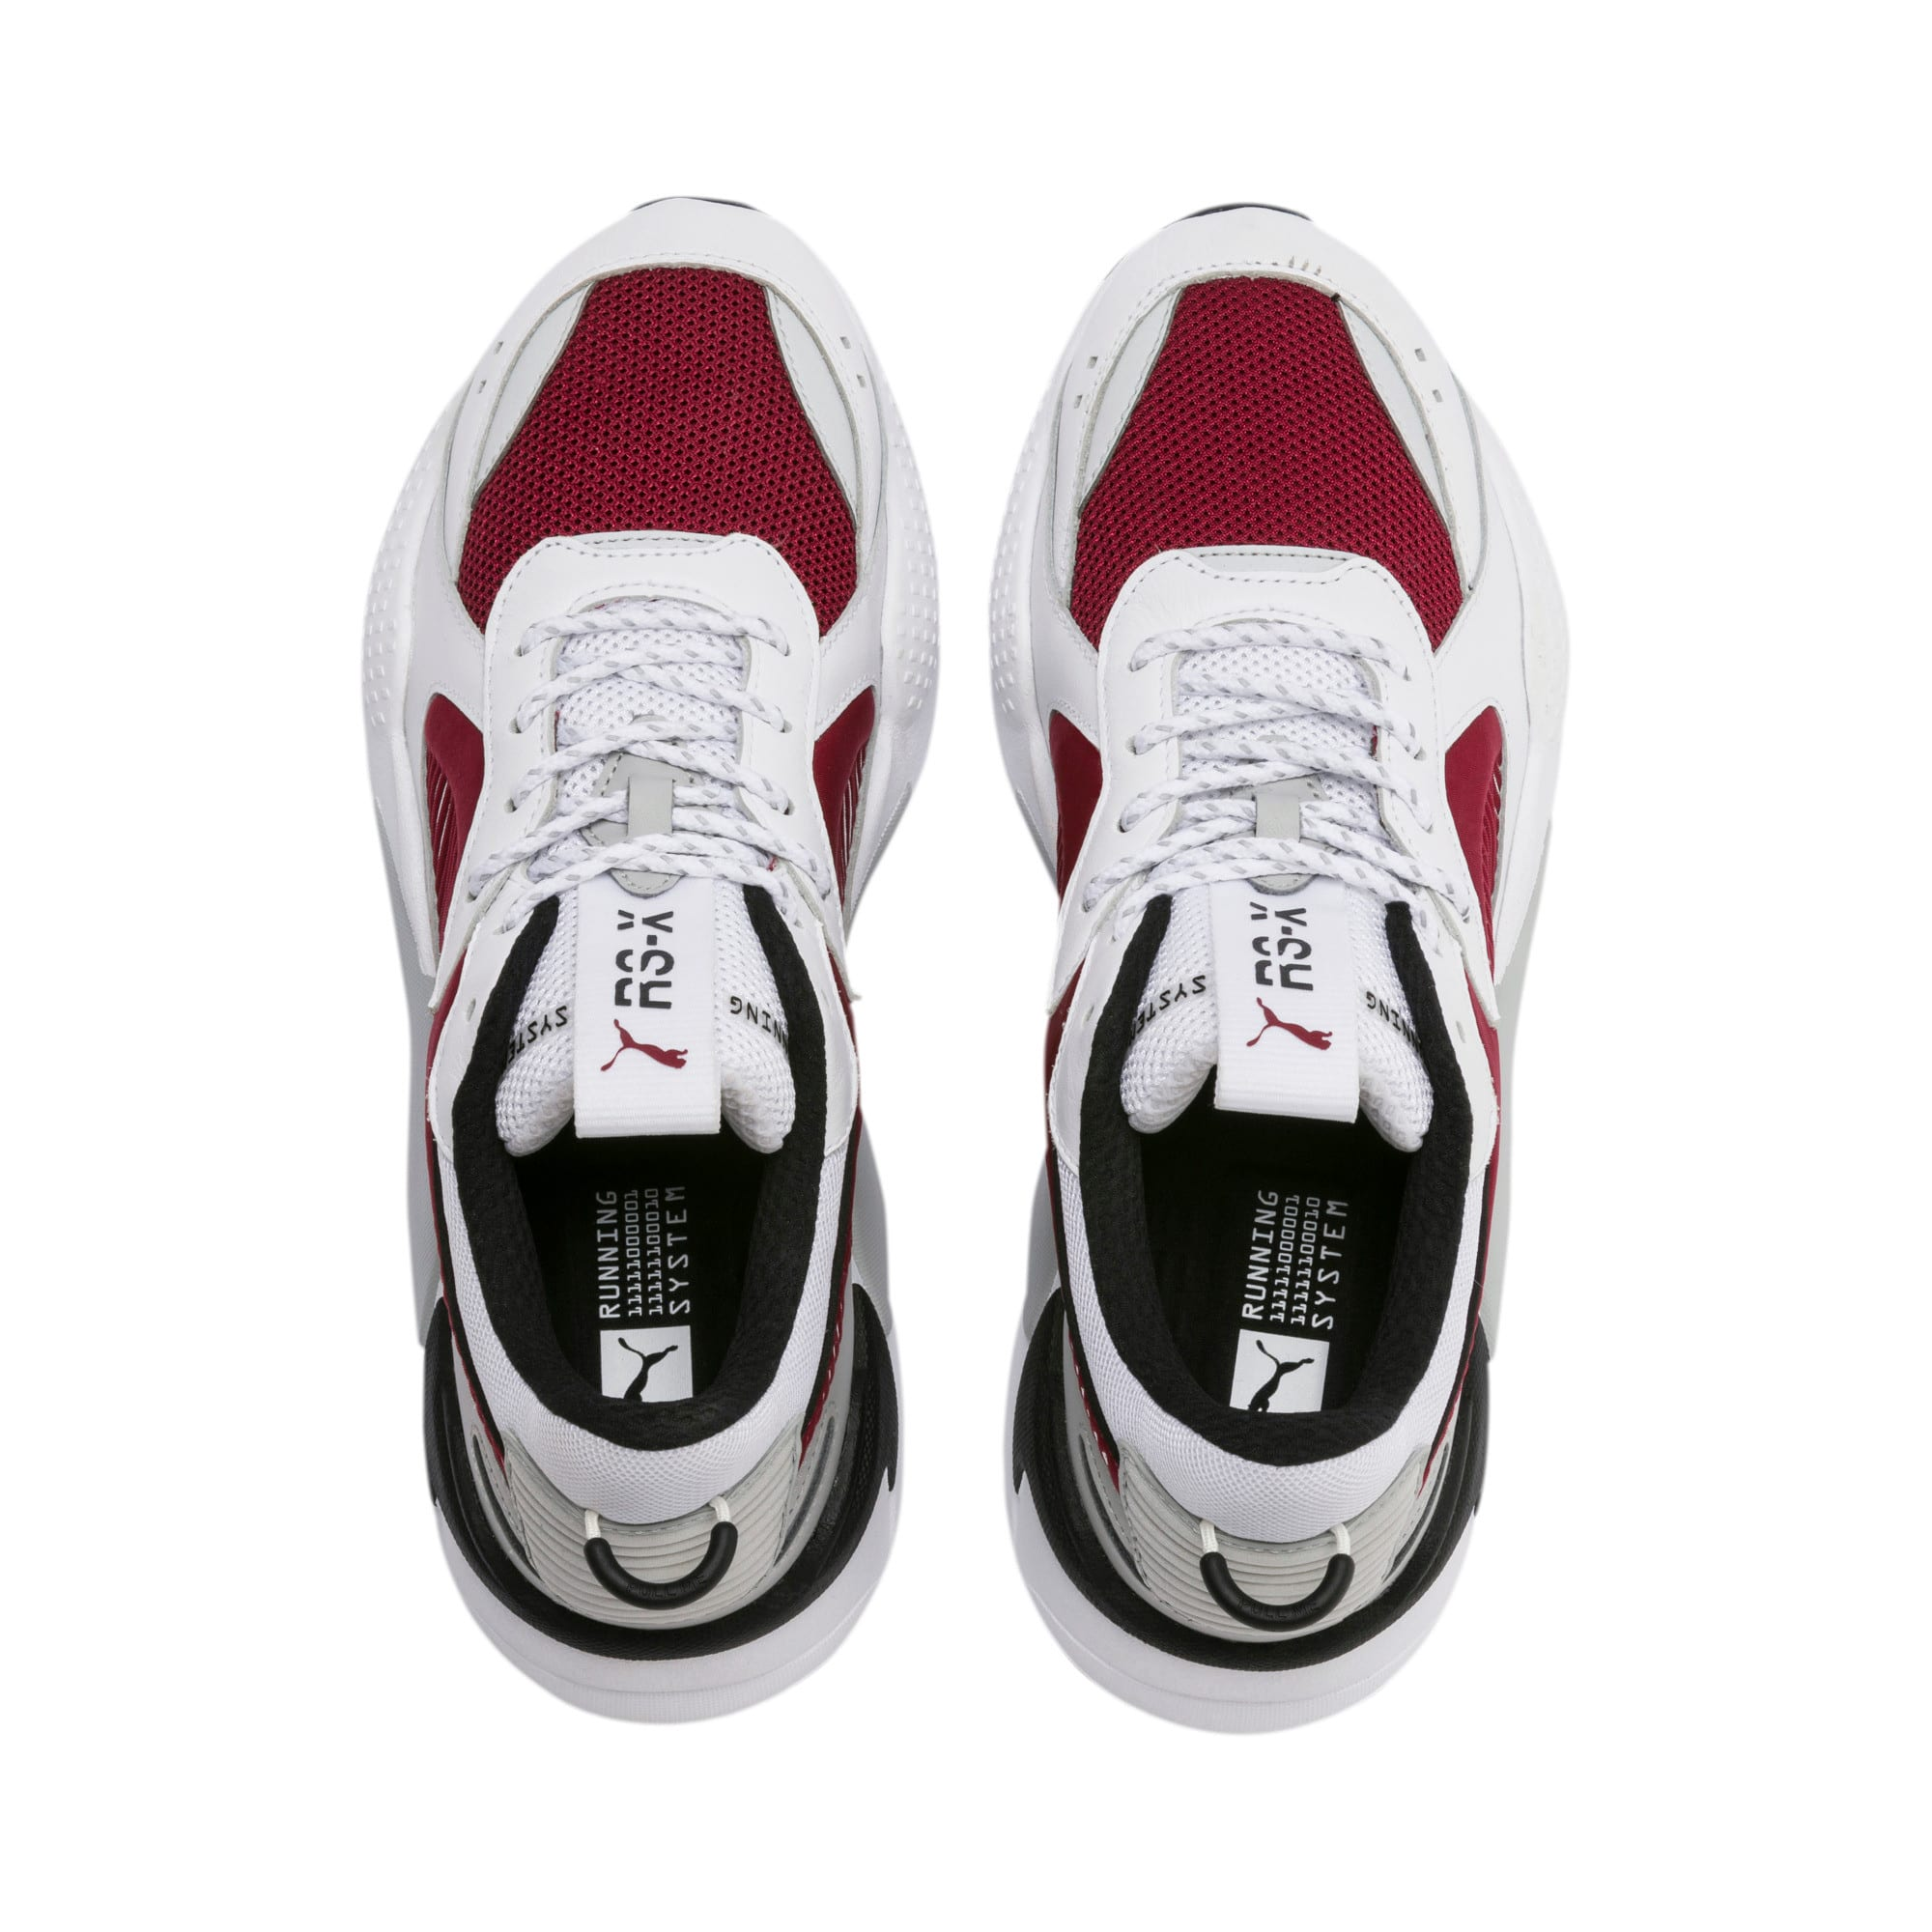 Thumbnail 7 of RS-X Trainers, Puma White-Rhubarb, medium